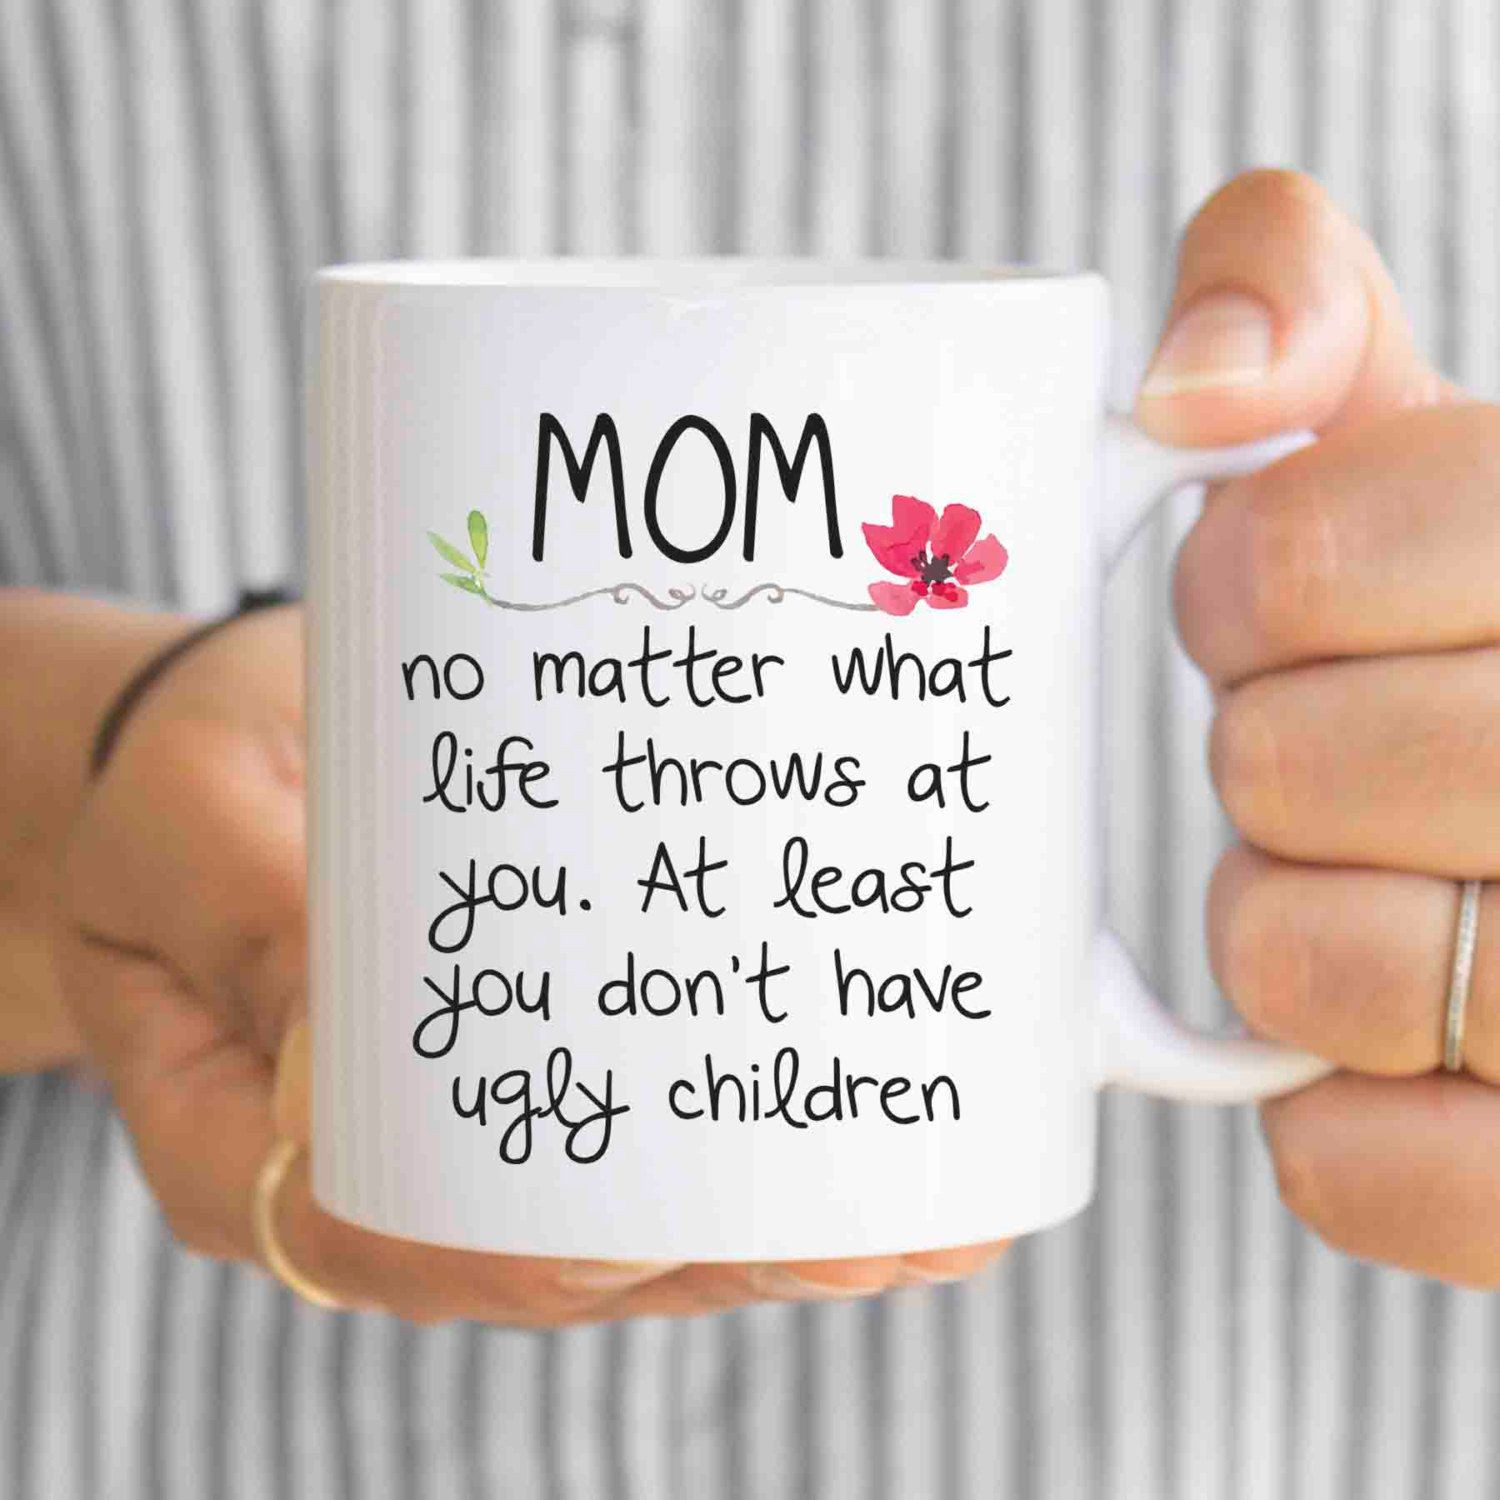 Good Mothers Day Gift Ideas  15 Unique Mother s Day Gifts Ideas 2019 For Mom – Best